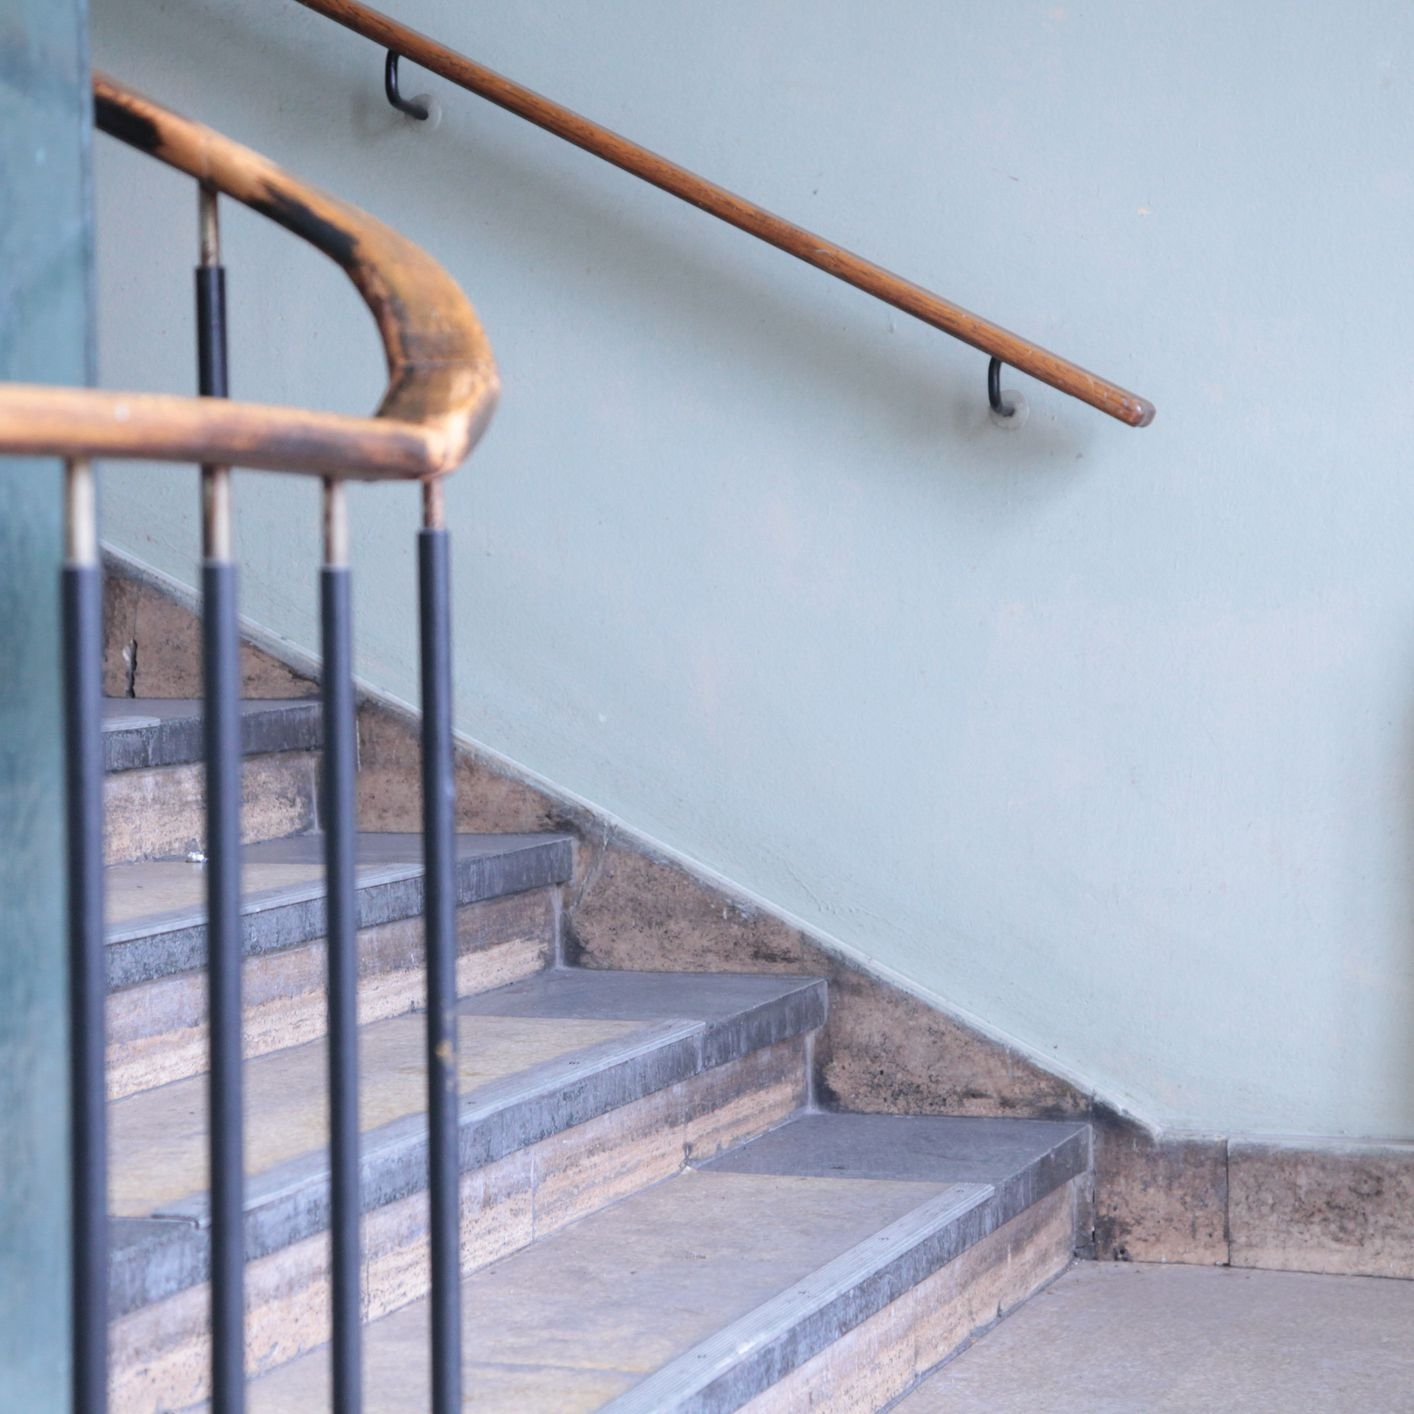 Stair Railing Building Code Summarized | Handrails For Stairs Interior | Staircase Handrail | Rectangular Tube | Residential | Barnwood Rustic | Industrial